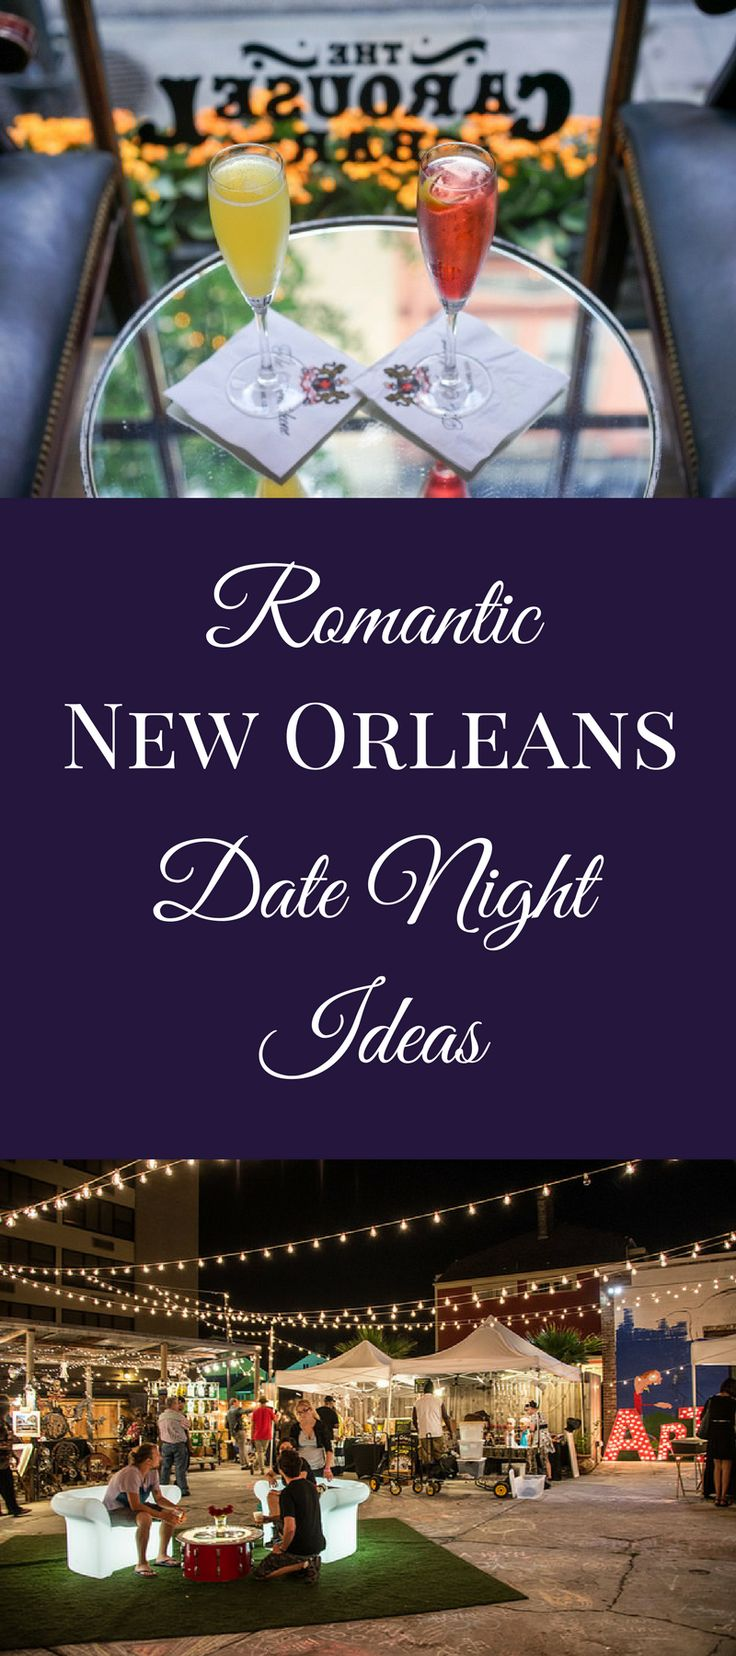 You never need an occasion to set aside a romantic evening for you and your favorite plus one, and New Orleans offers up plenty of romance year-round.